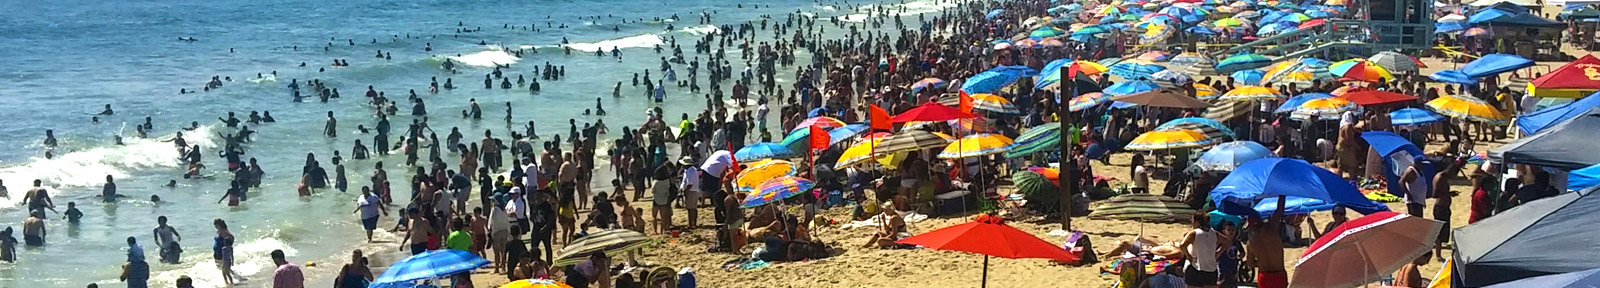 View of Santa Monica Beach Filled with People and Umbrellas - Par Commerial Brokerage - The Westside Specialist